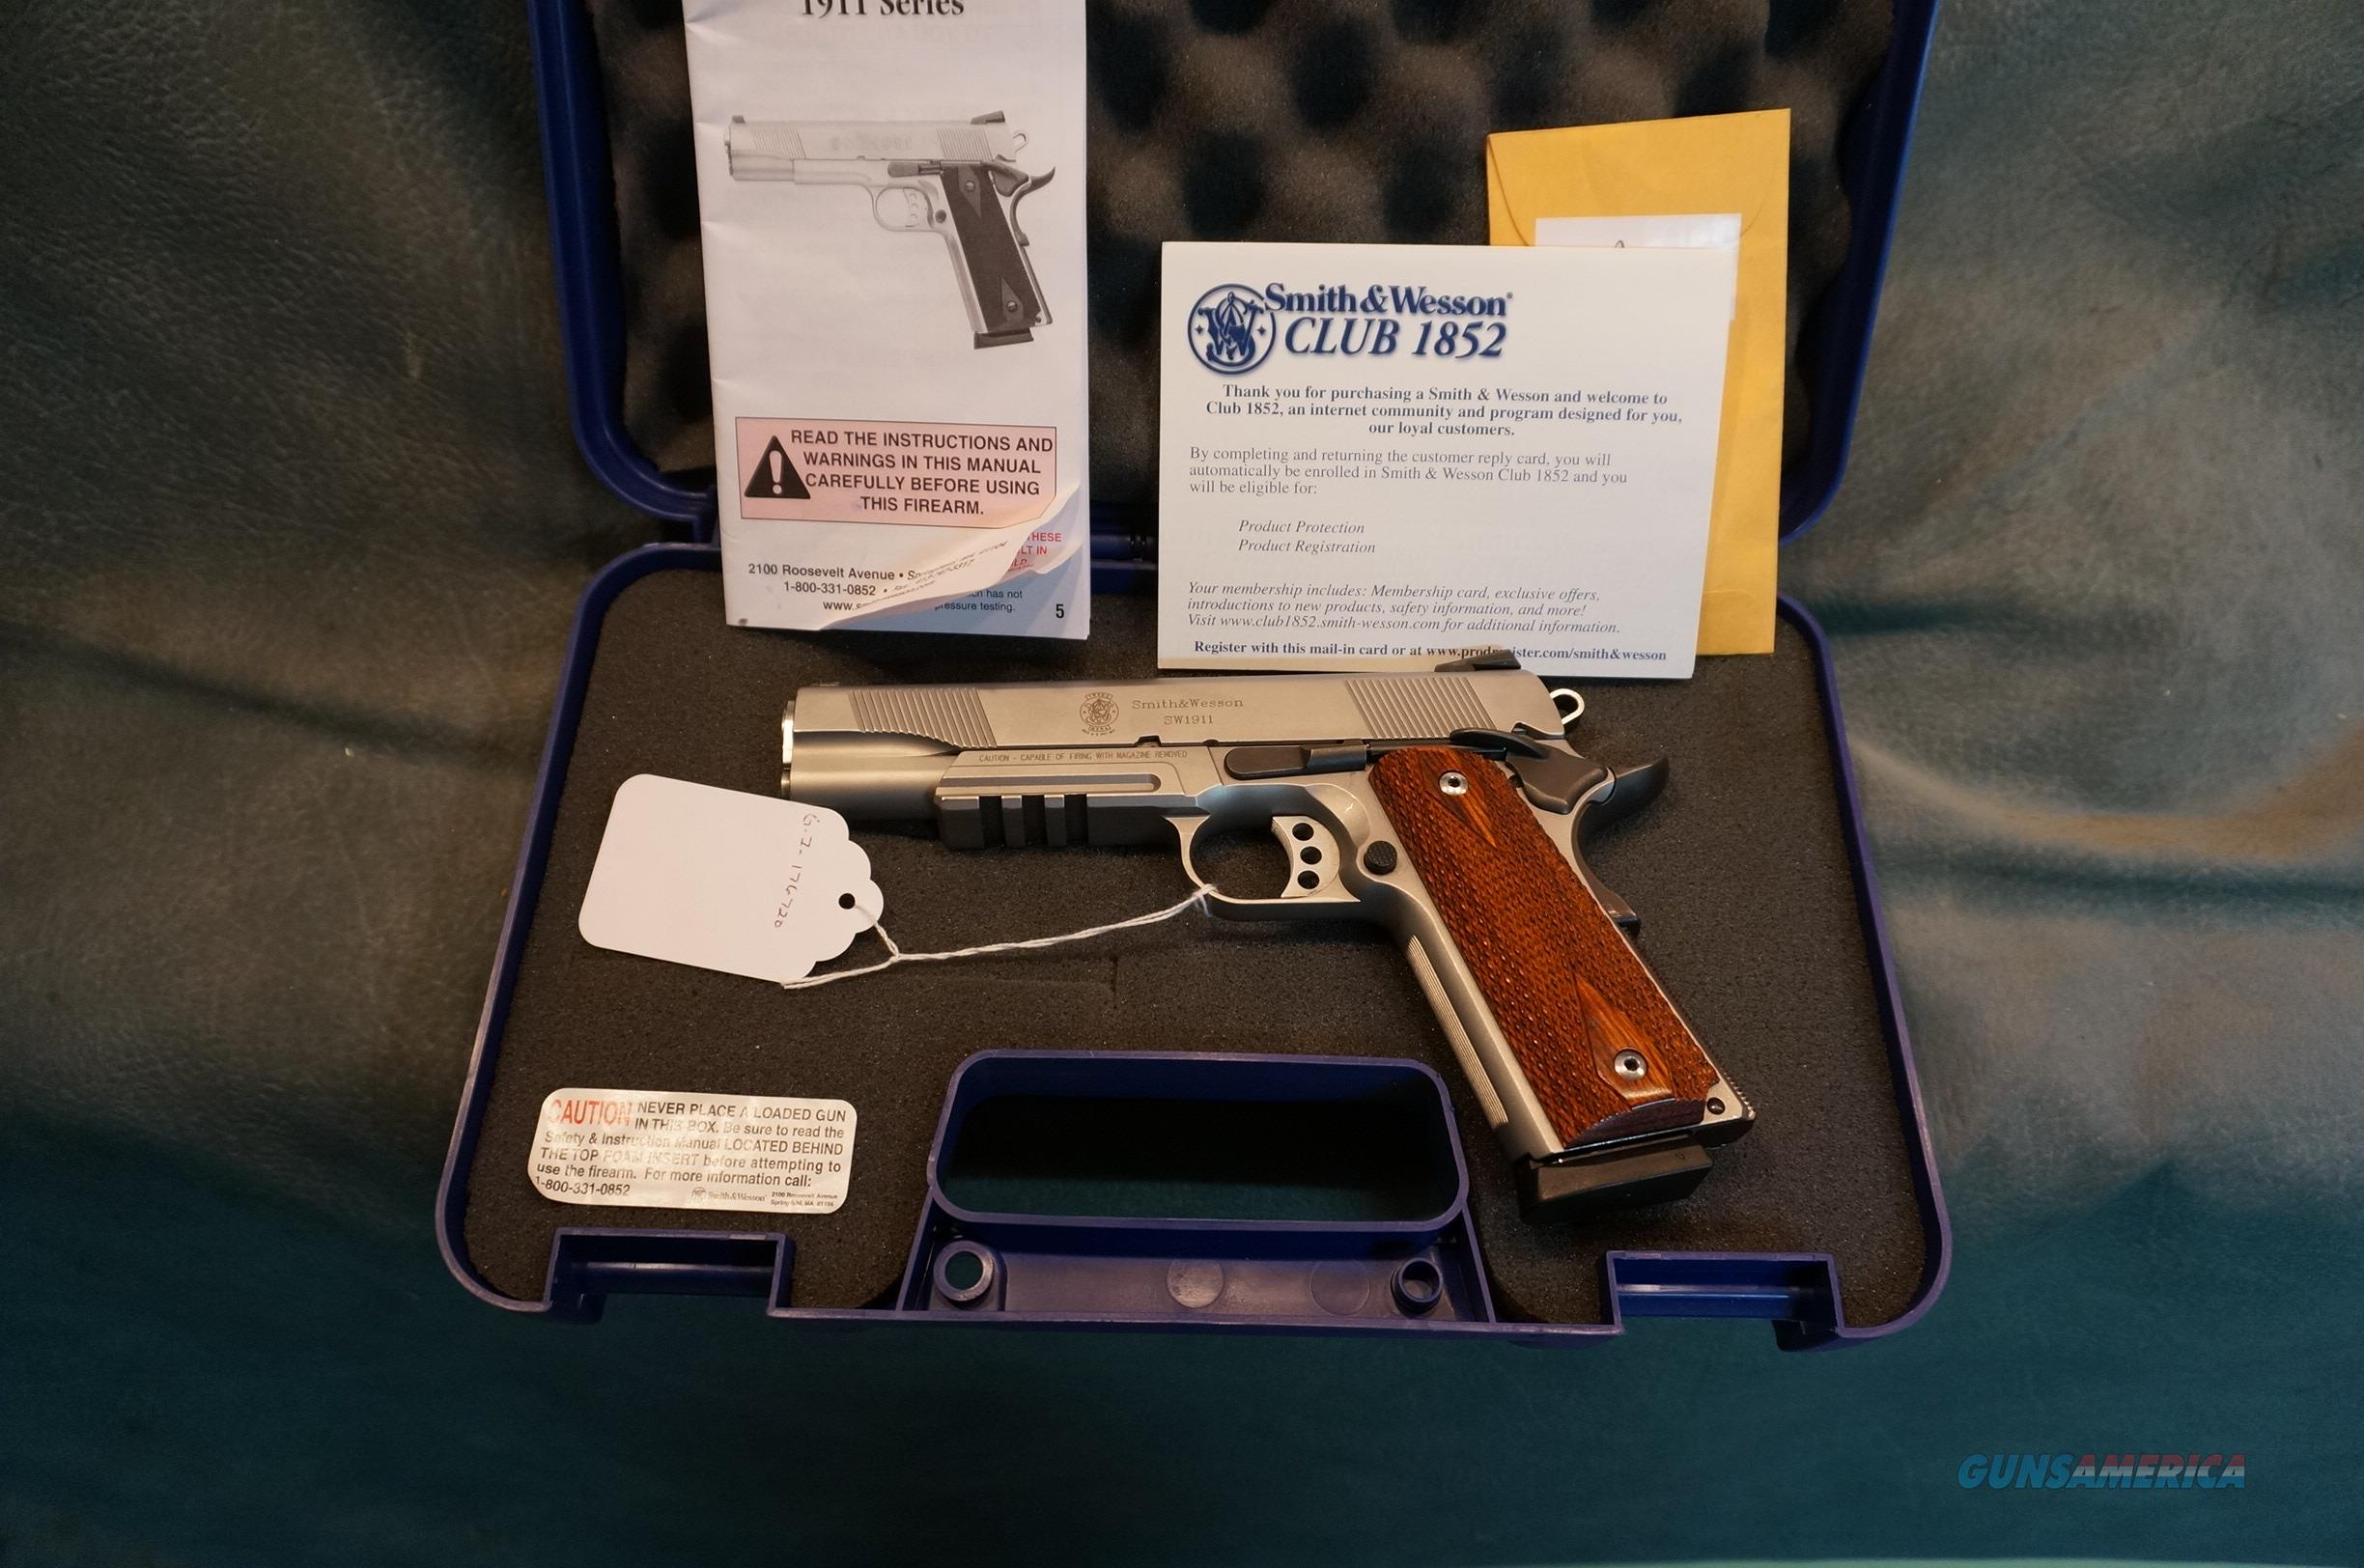 S+W 1911 45ACP stainless steel  Guns > Pistols > Smith & Wesson Pistols - Autos > Steel Frame